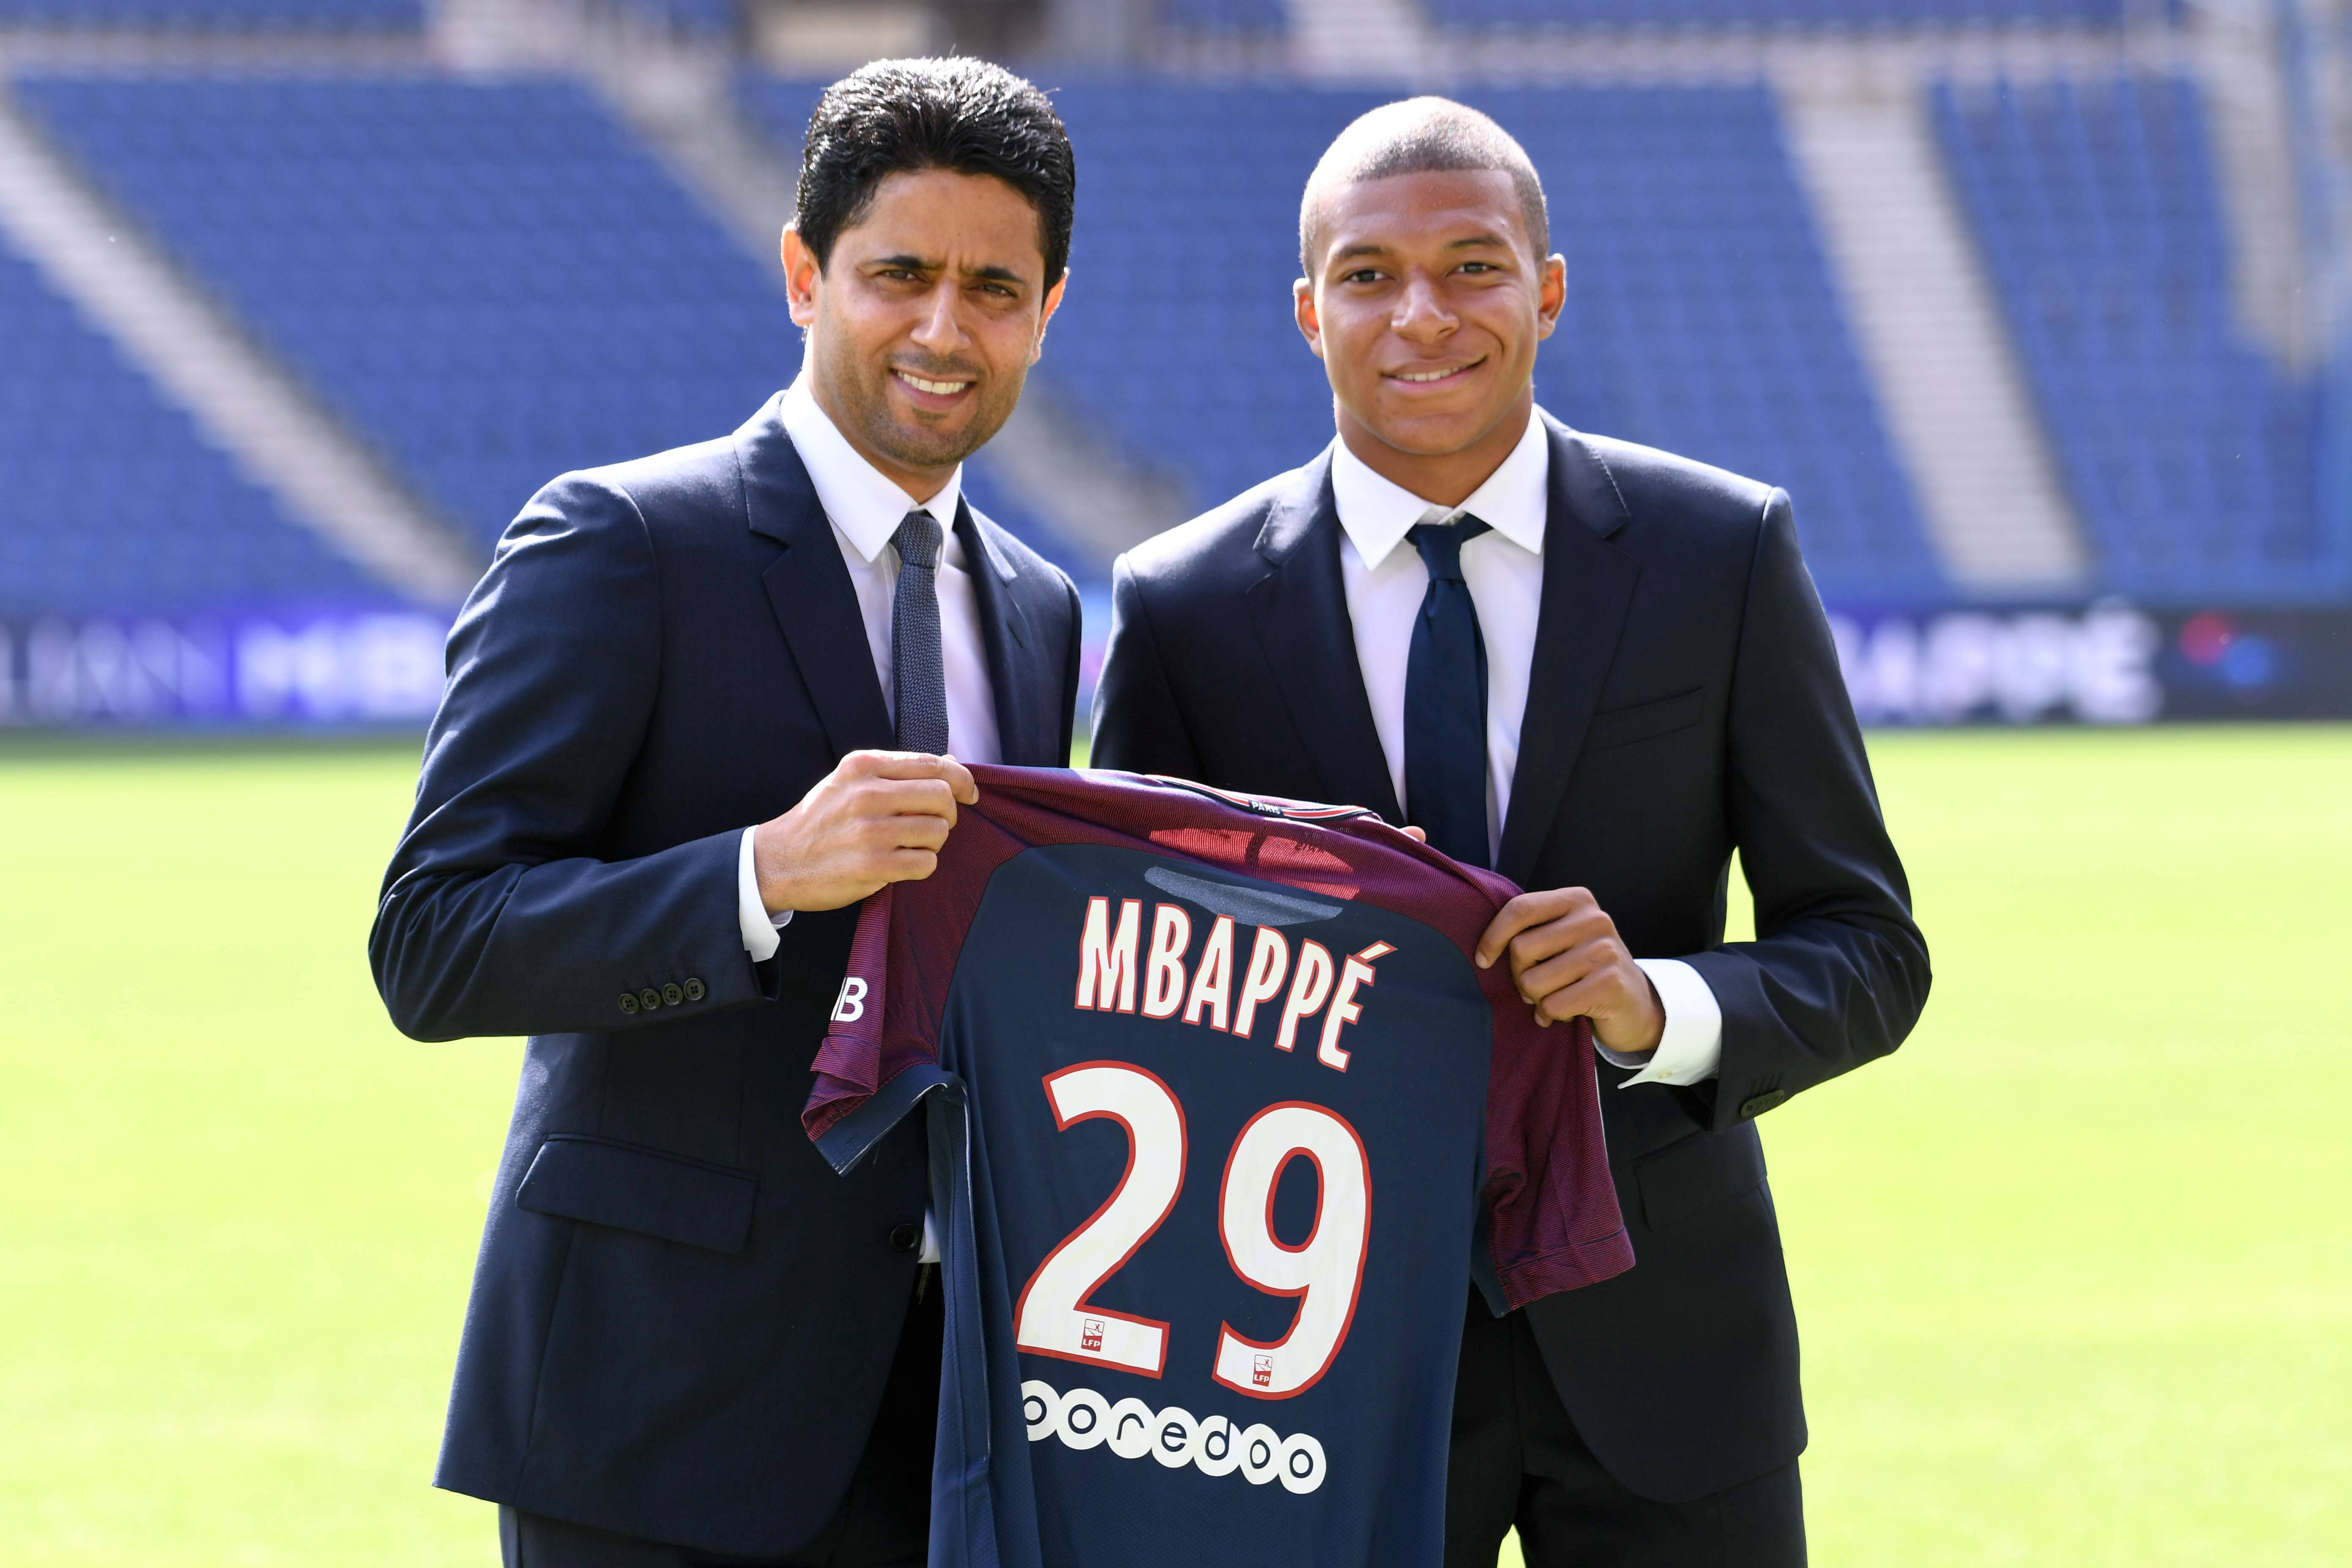 Mbappe Wechsel